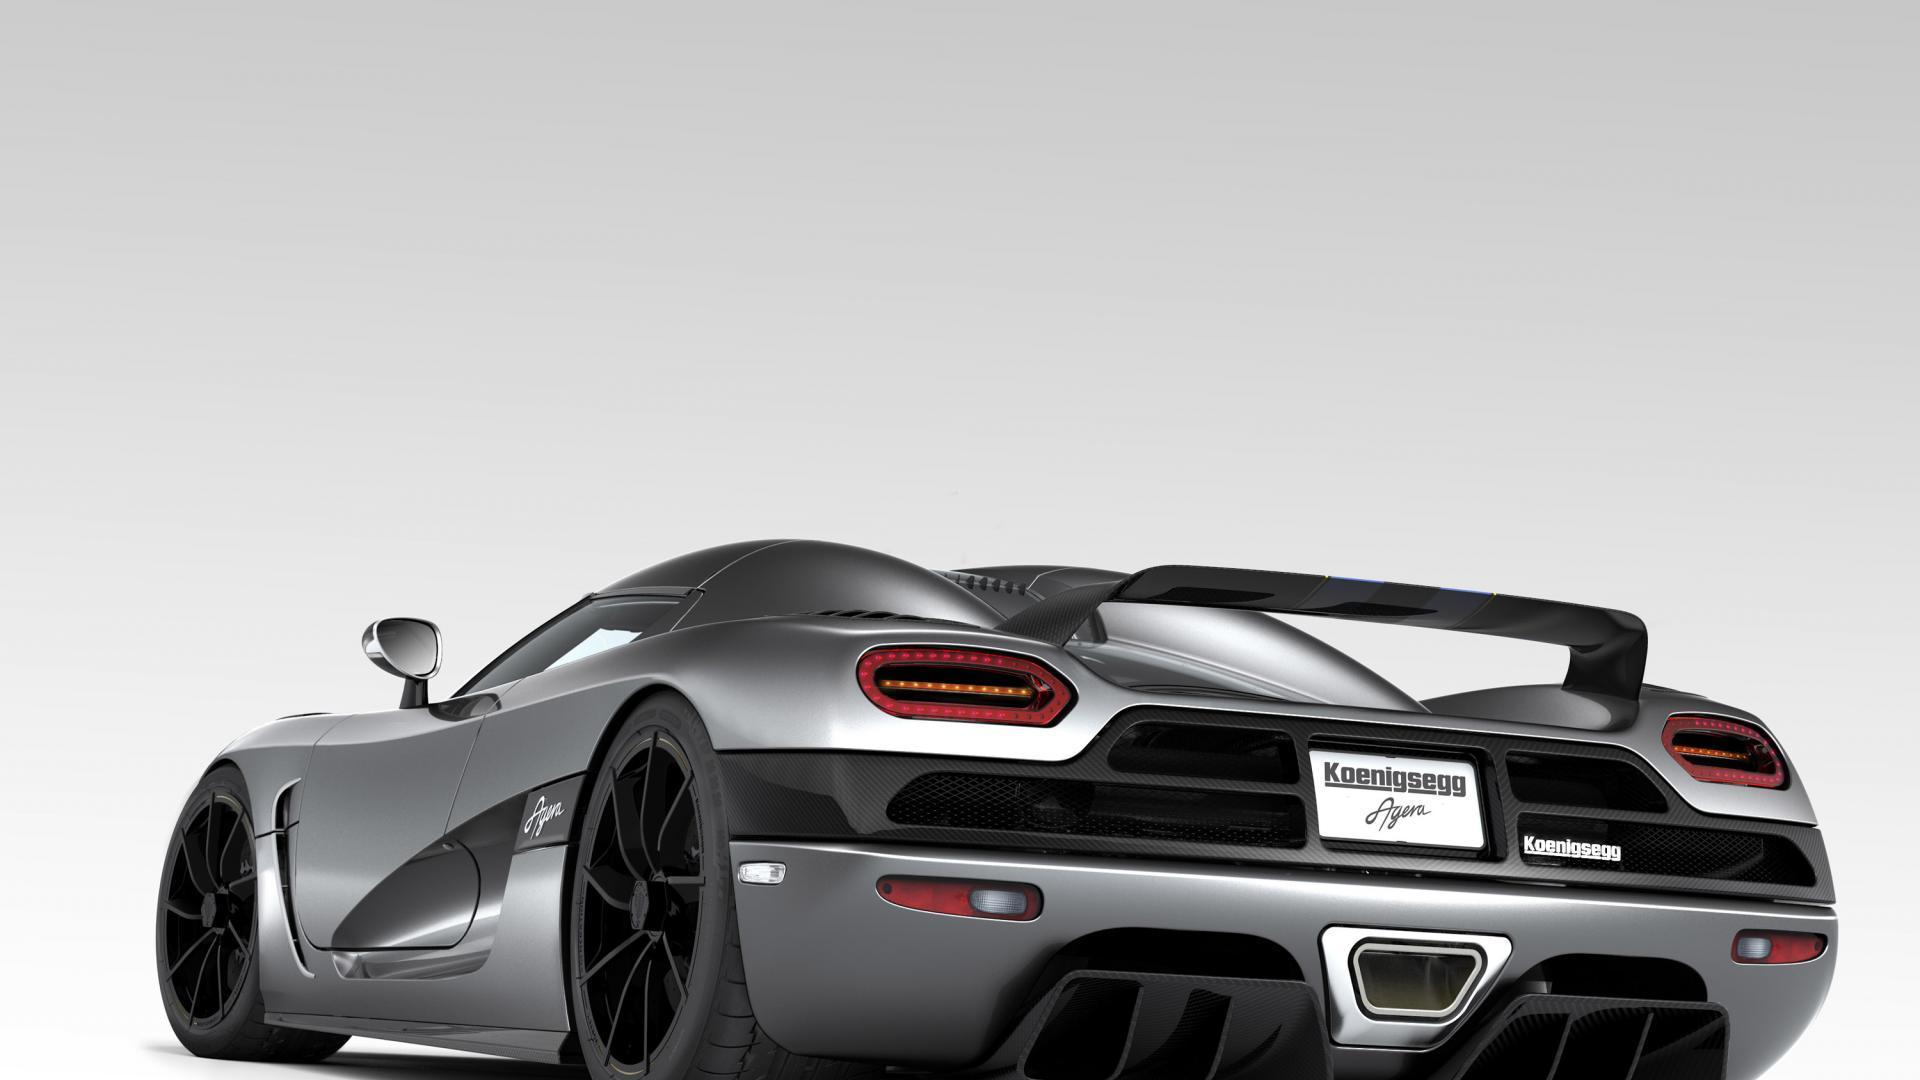 Koenigsegg Agera|Latest Cars Wallpapers | Widescreen Wallpapers ...